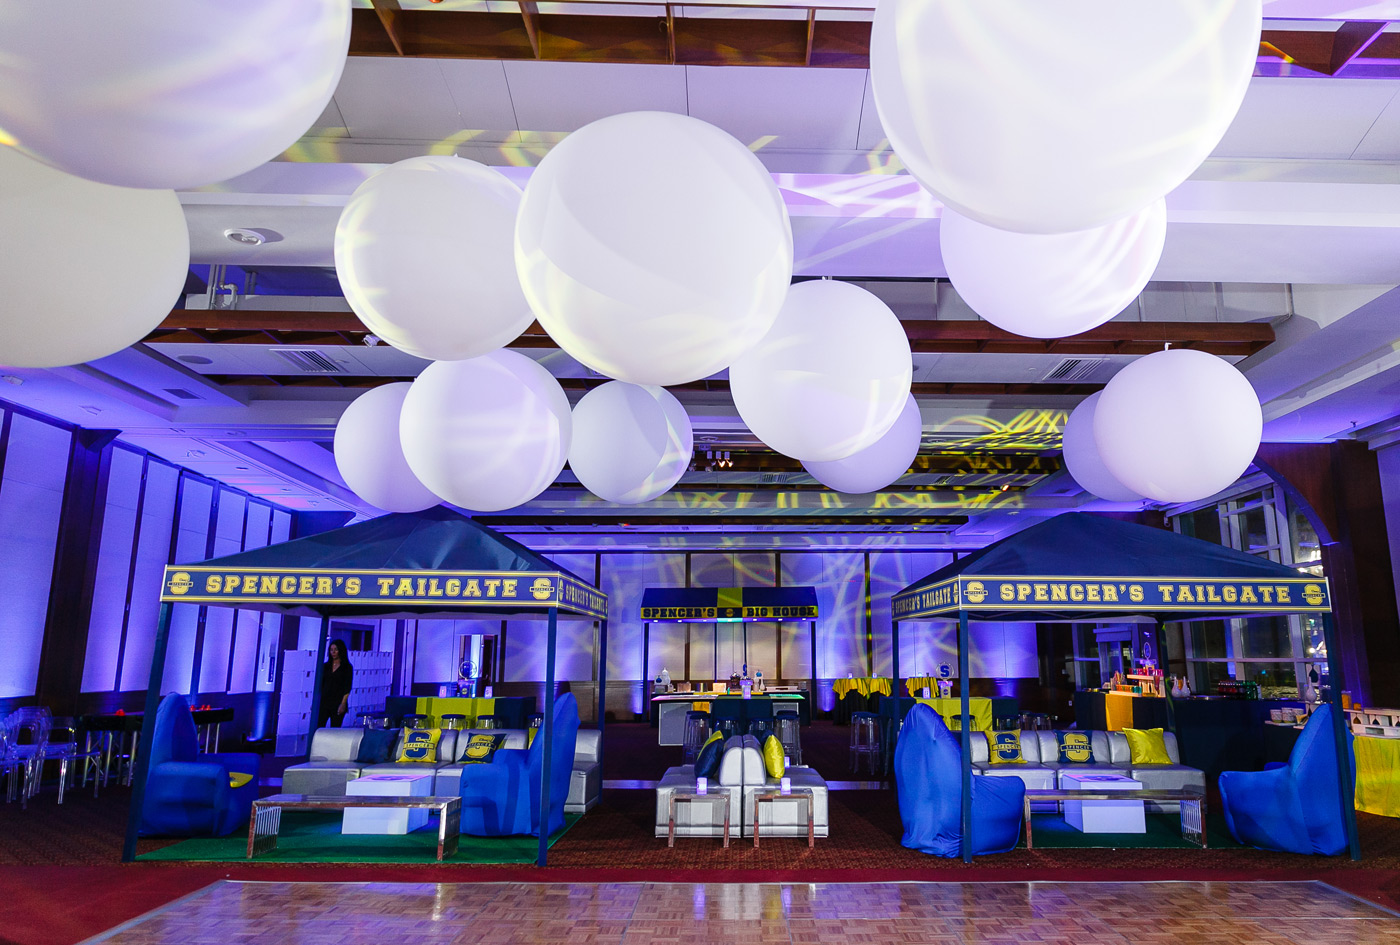 Giant white balloons hang above dance floor at tailgate themed Mitzvah